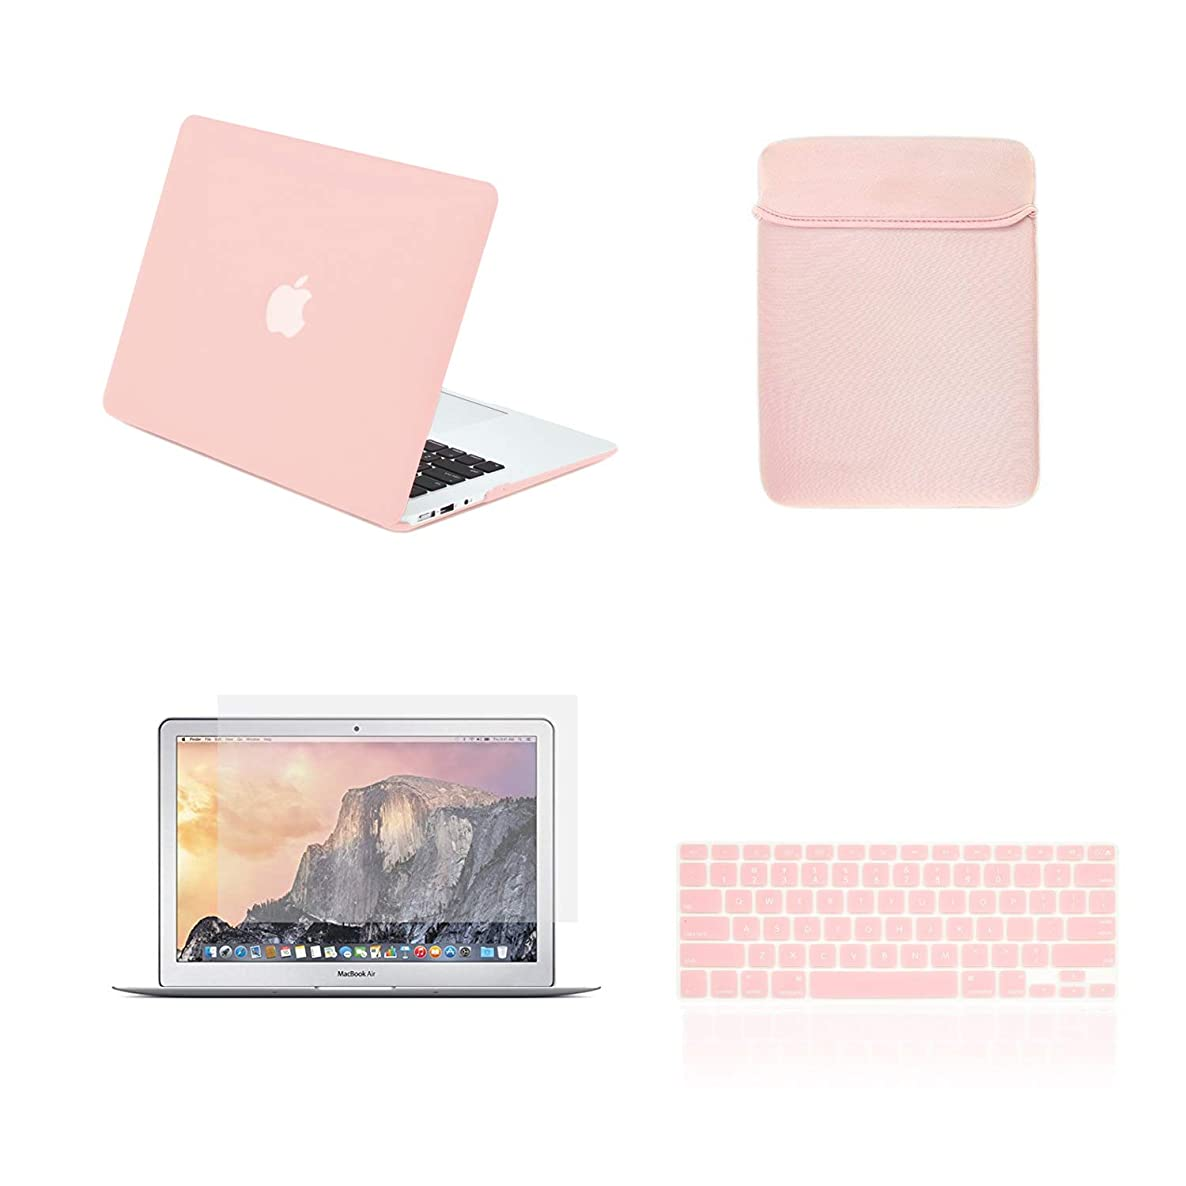 TOP CASE - 4 in 1 Bundle Hard Case, Keyboard Cover, Sleeve Bag, Screen Protector Compatible with MacBook Air 13